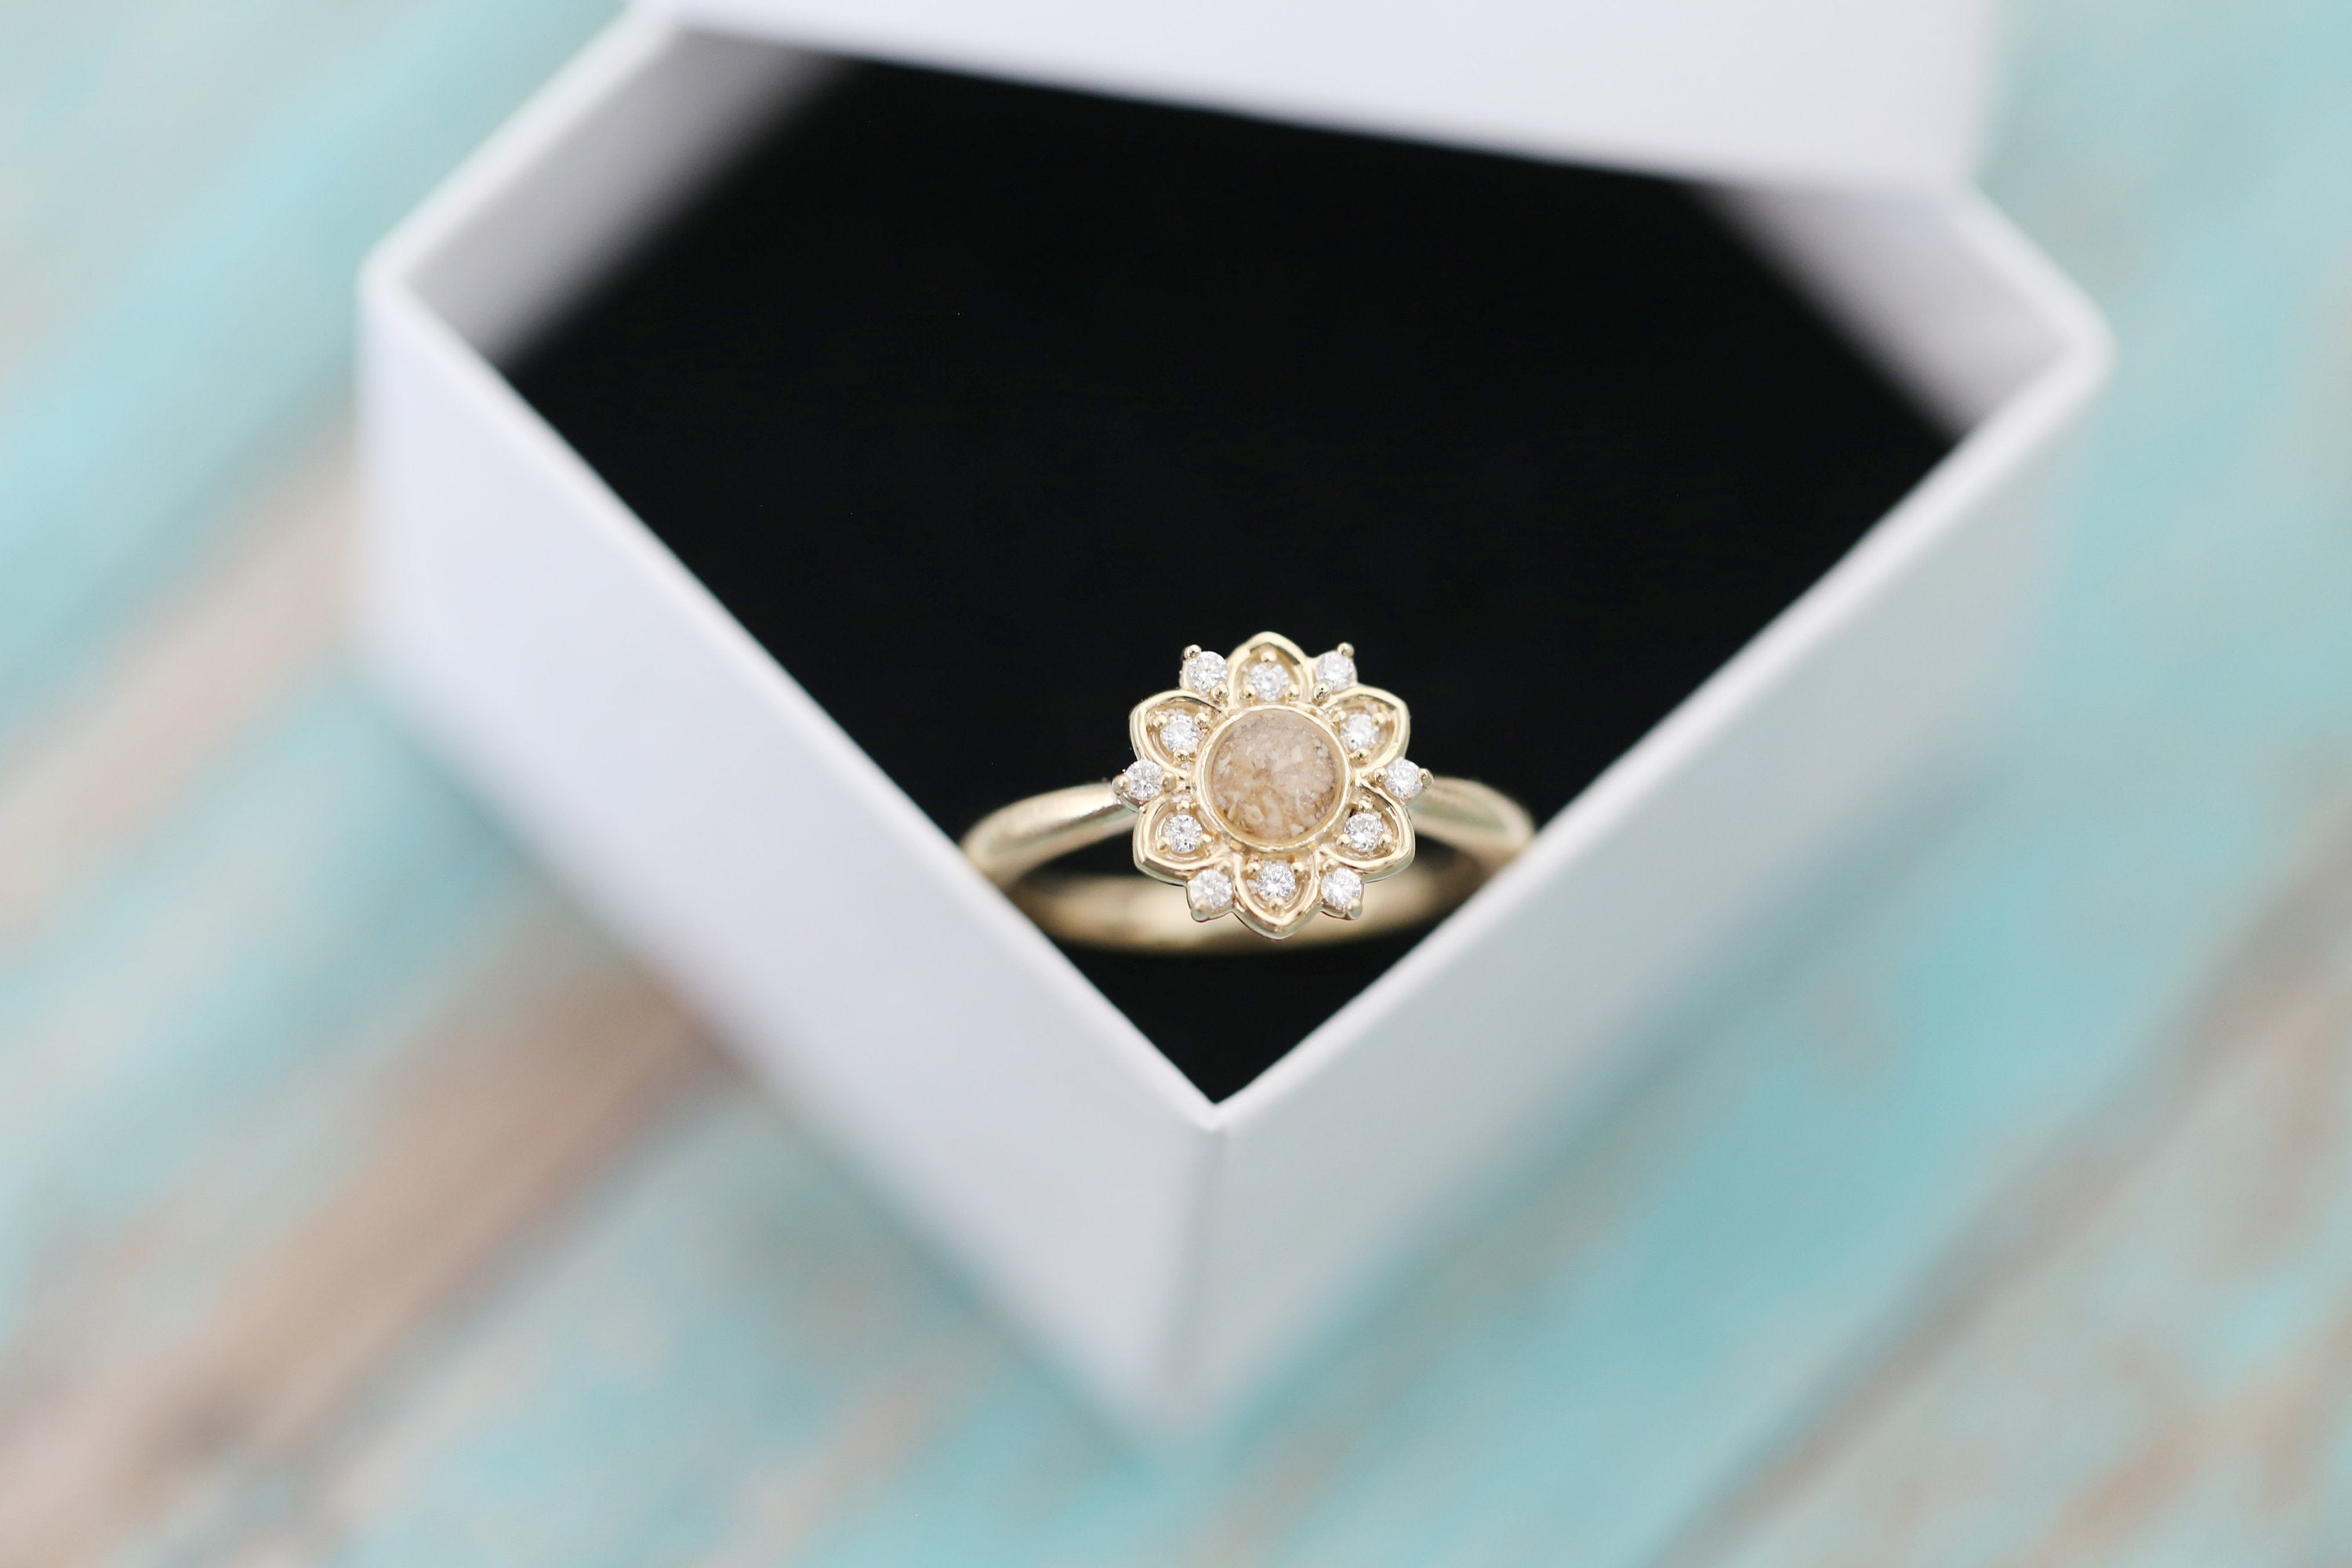 14k Gold Cremation Ring - Diamond Flower Stacking Ring - Cremation Jewelry - Ash Ring - Ash Jewelry - Urn Ring - Pet Loss Cremation Ring